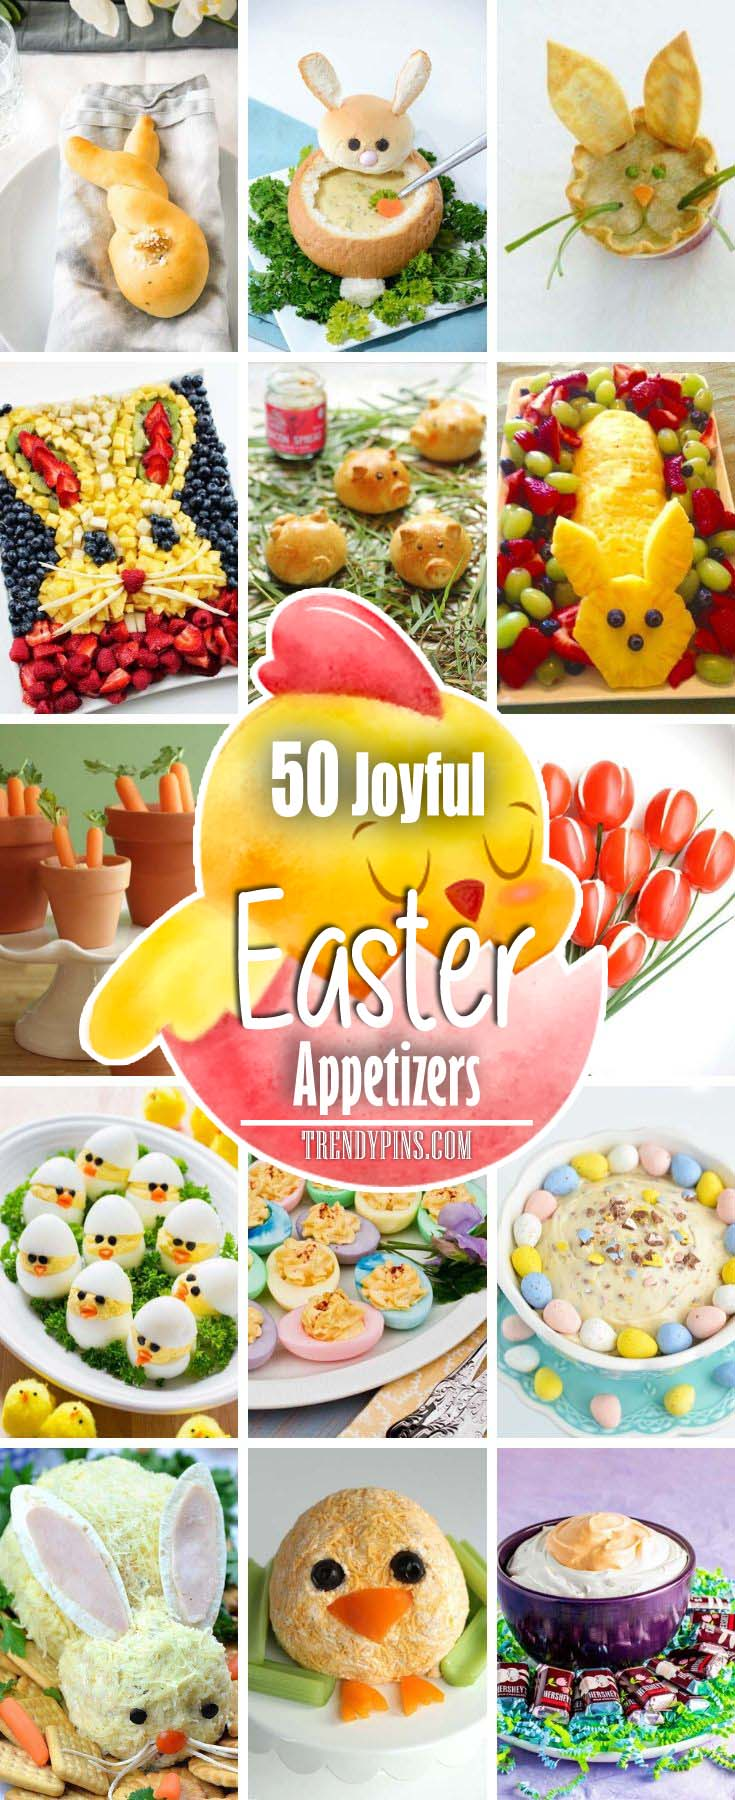 There are many recipes out there from super simple to more complex. Try these delicious DIY snack ideas. #Easter #appetizers #recipes #trendypins